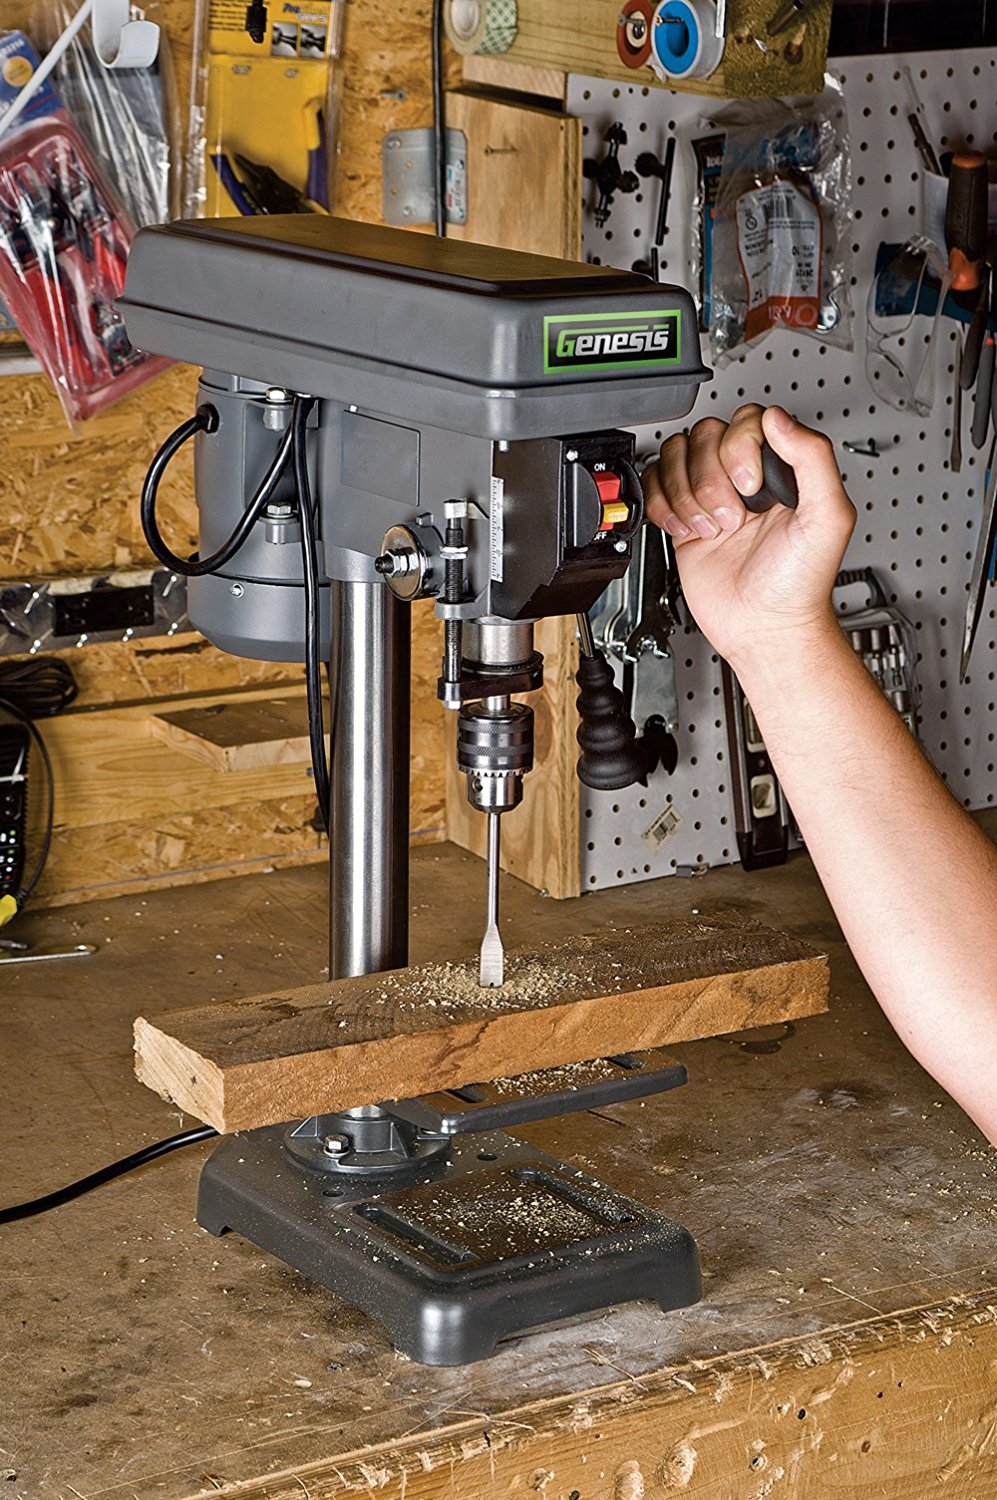 Genesis GDP805P drill press